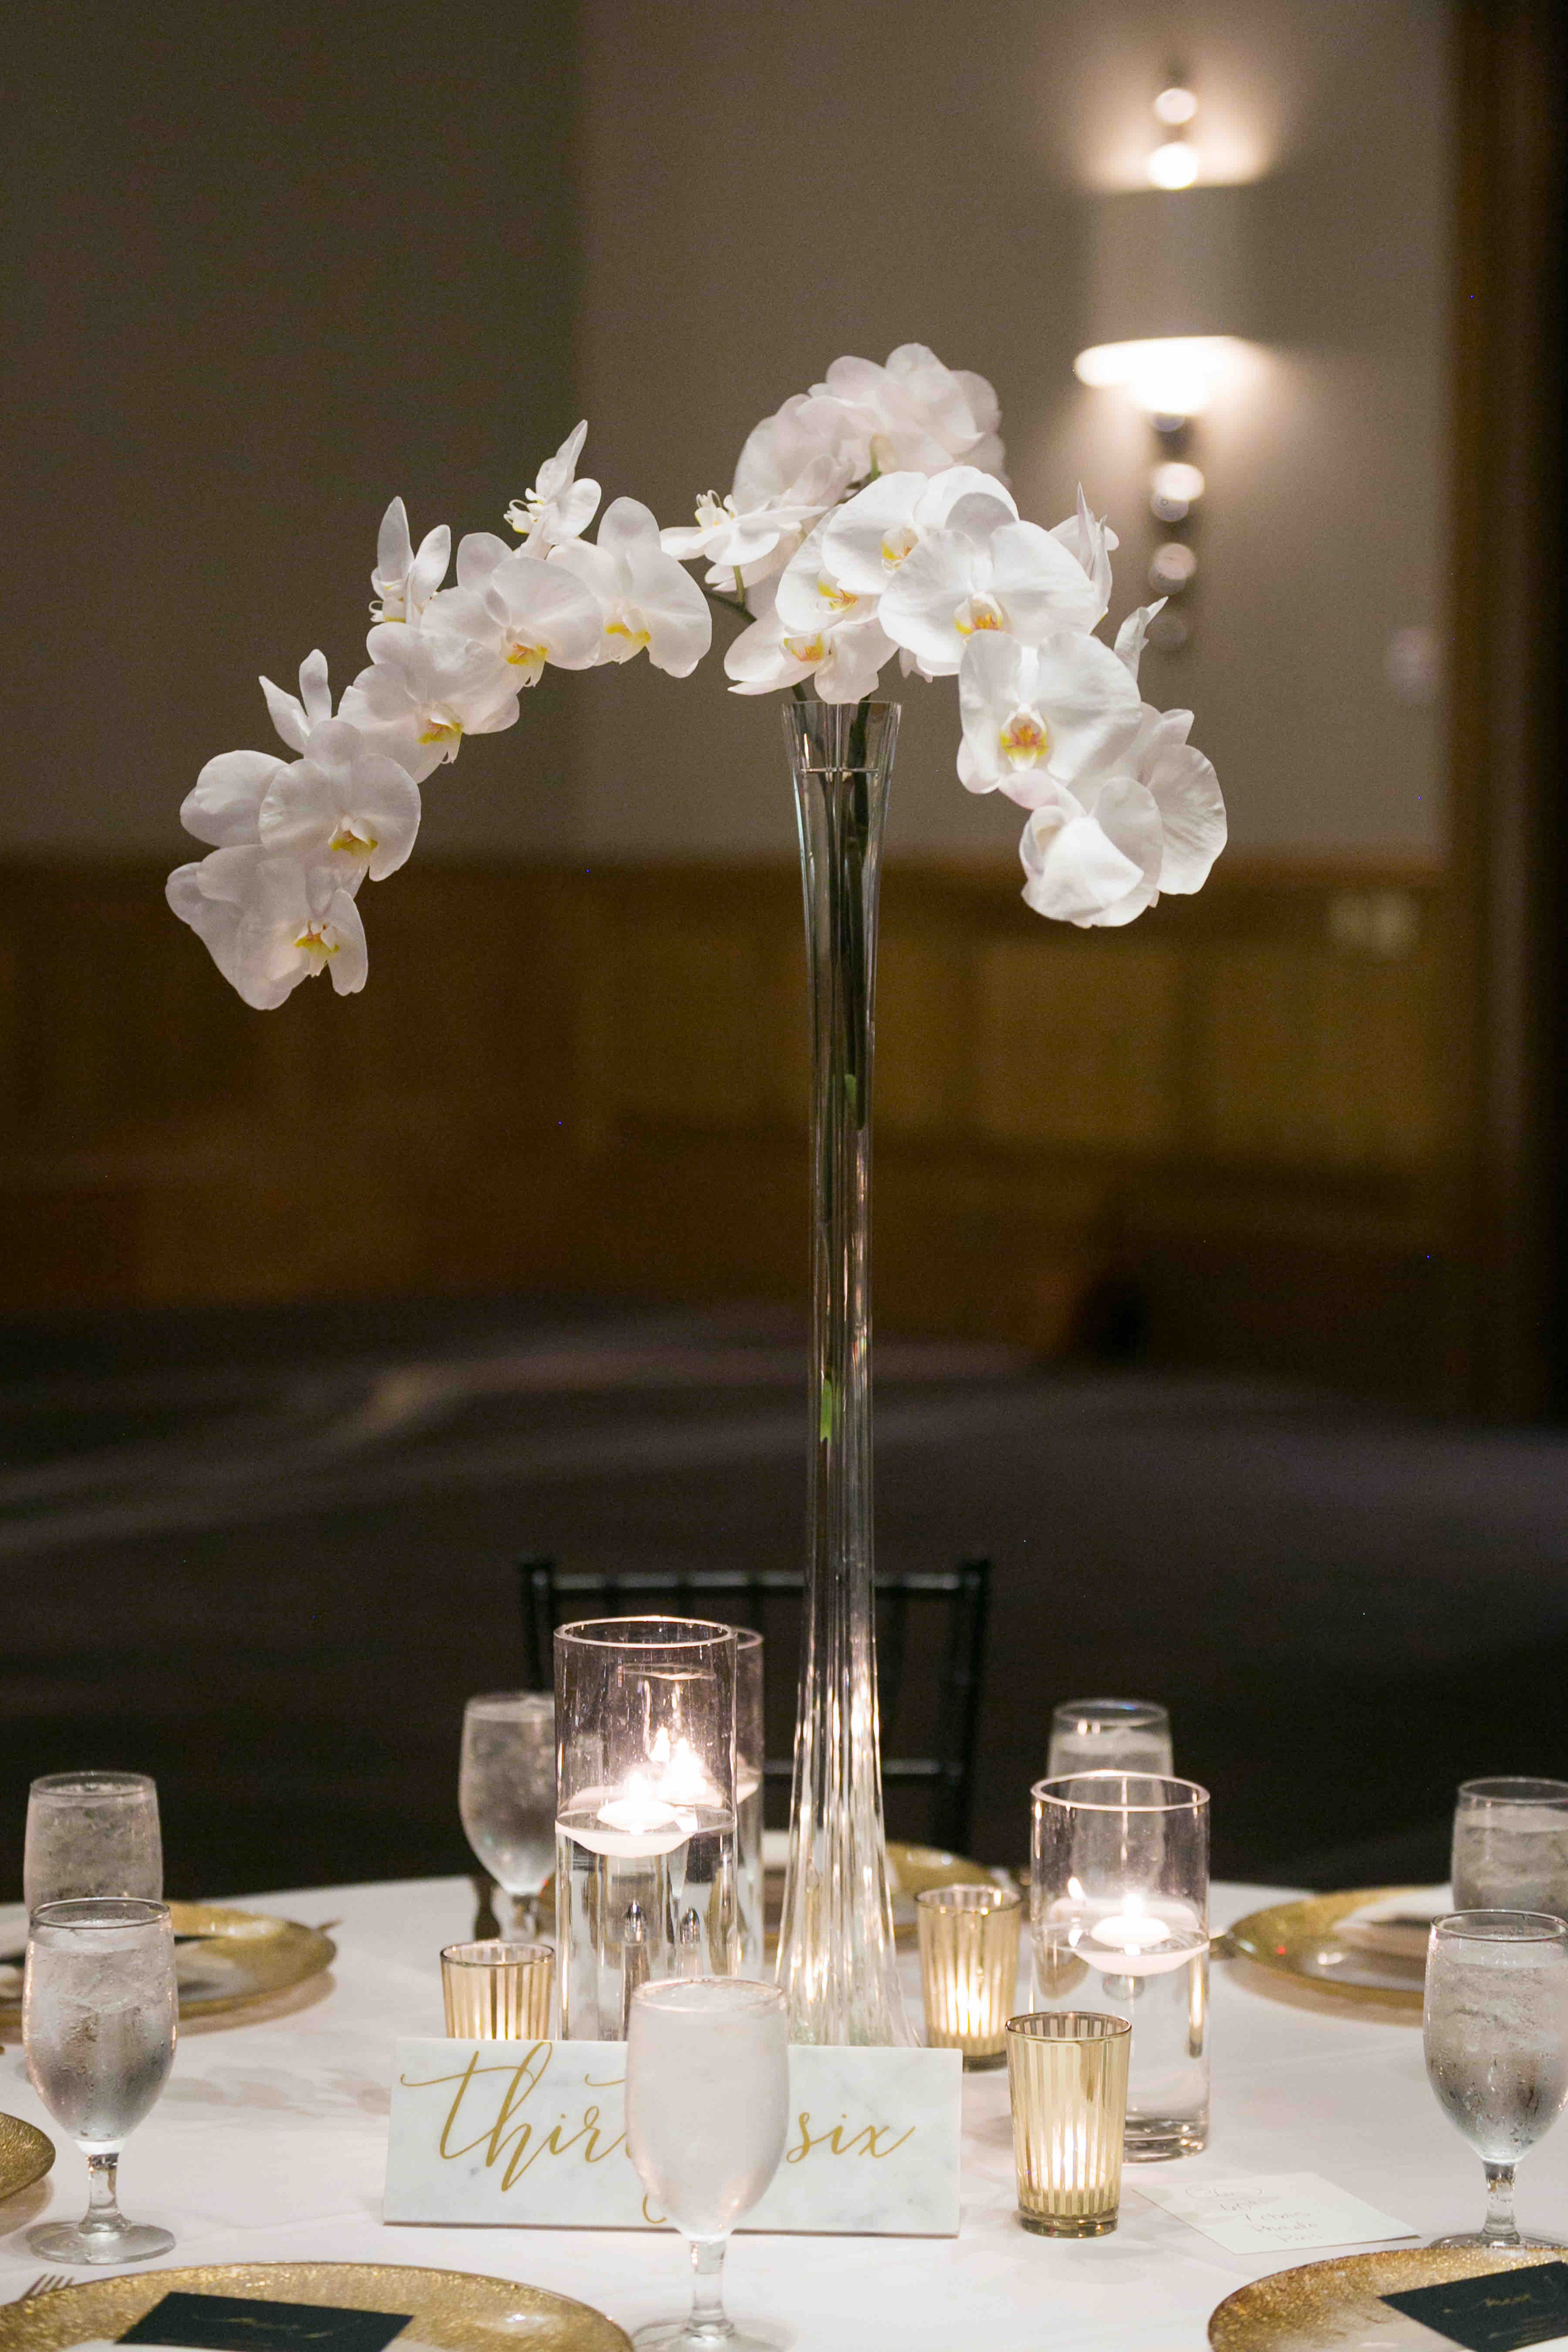 White Orchid Centerpiece in 2020 White orchid